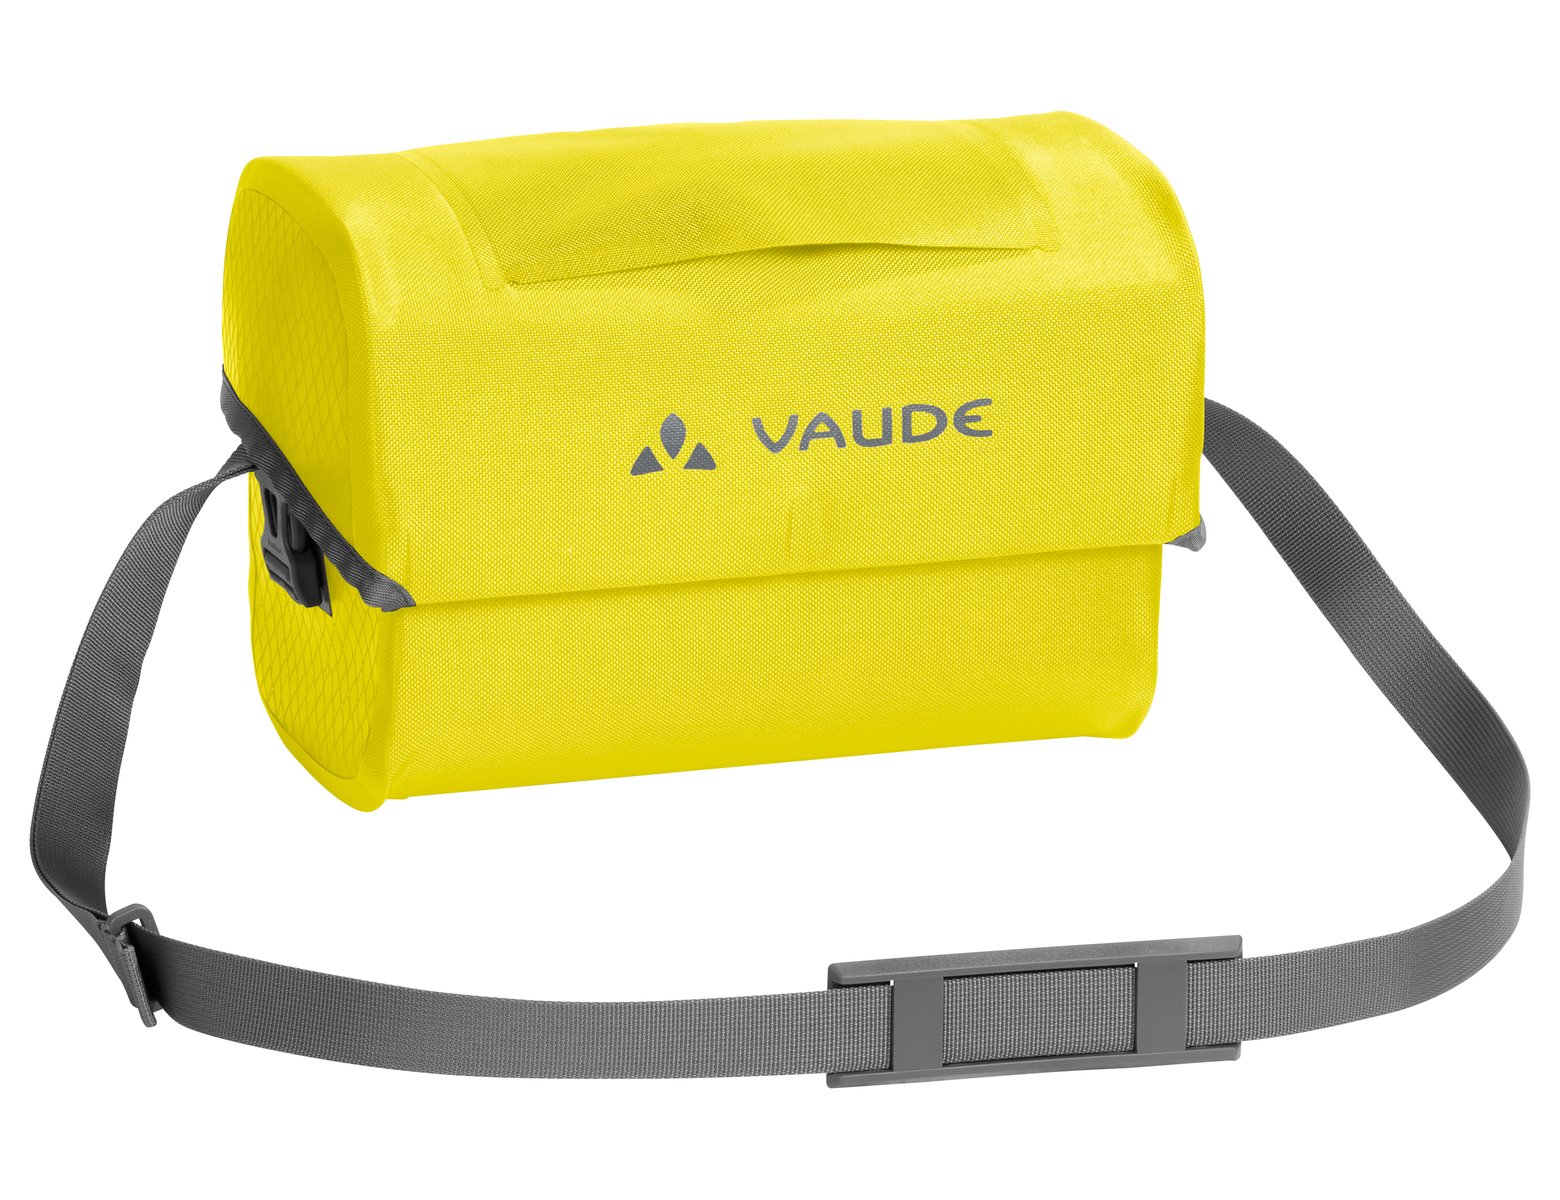 VAUDE Aqua Box canary  - VAUDE Aqua Box canary